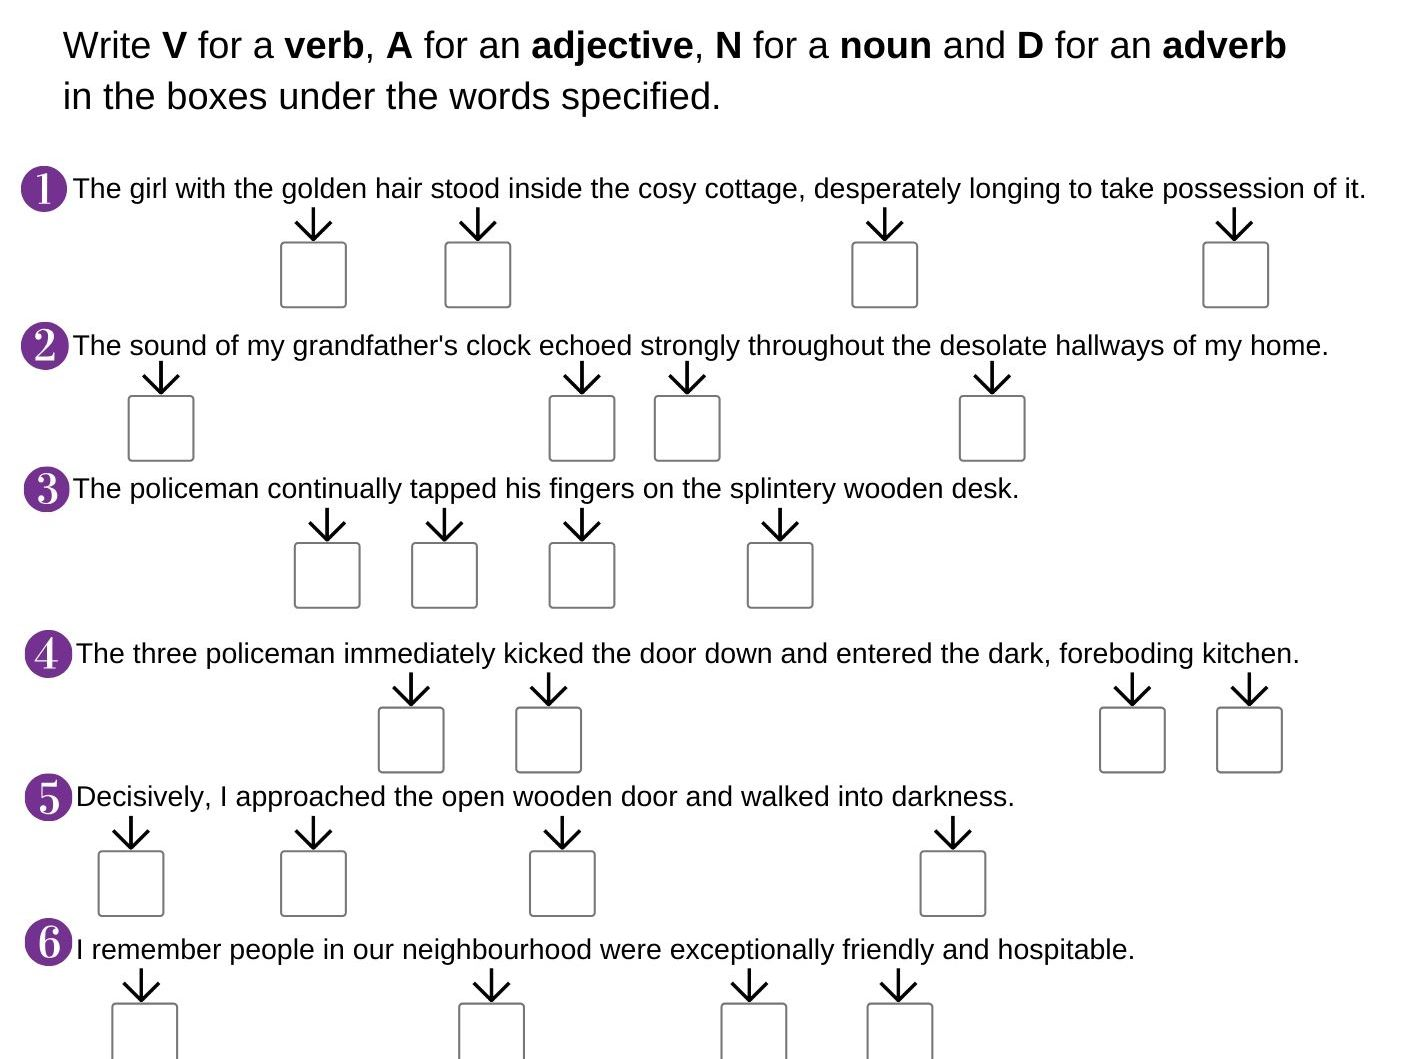 Identifying nouns, verbs, adjectives and adverbs